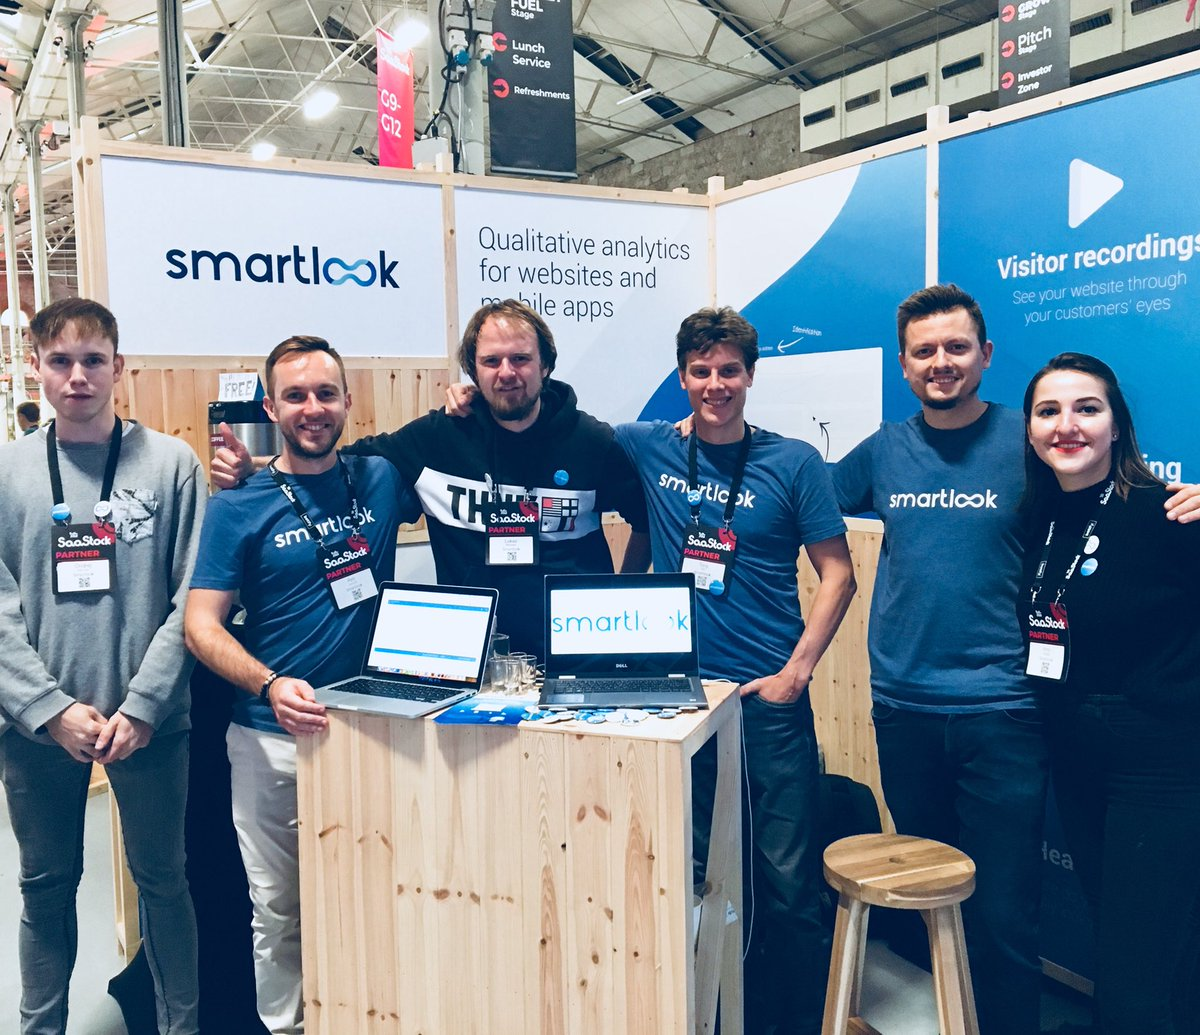 Smartlook at SaaStock